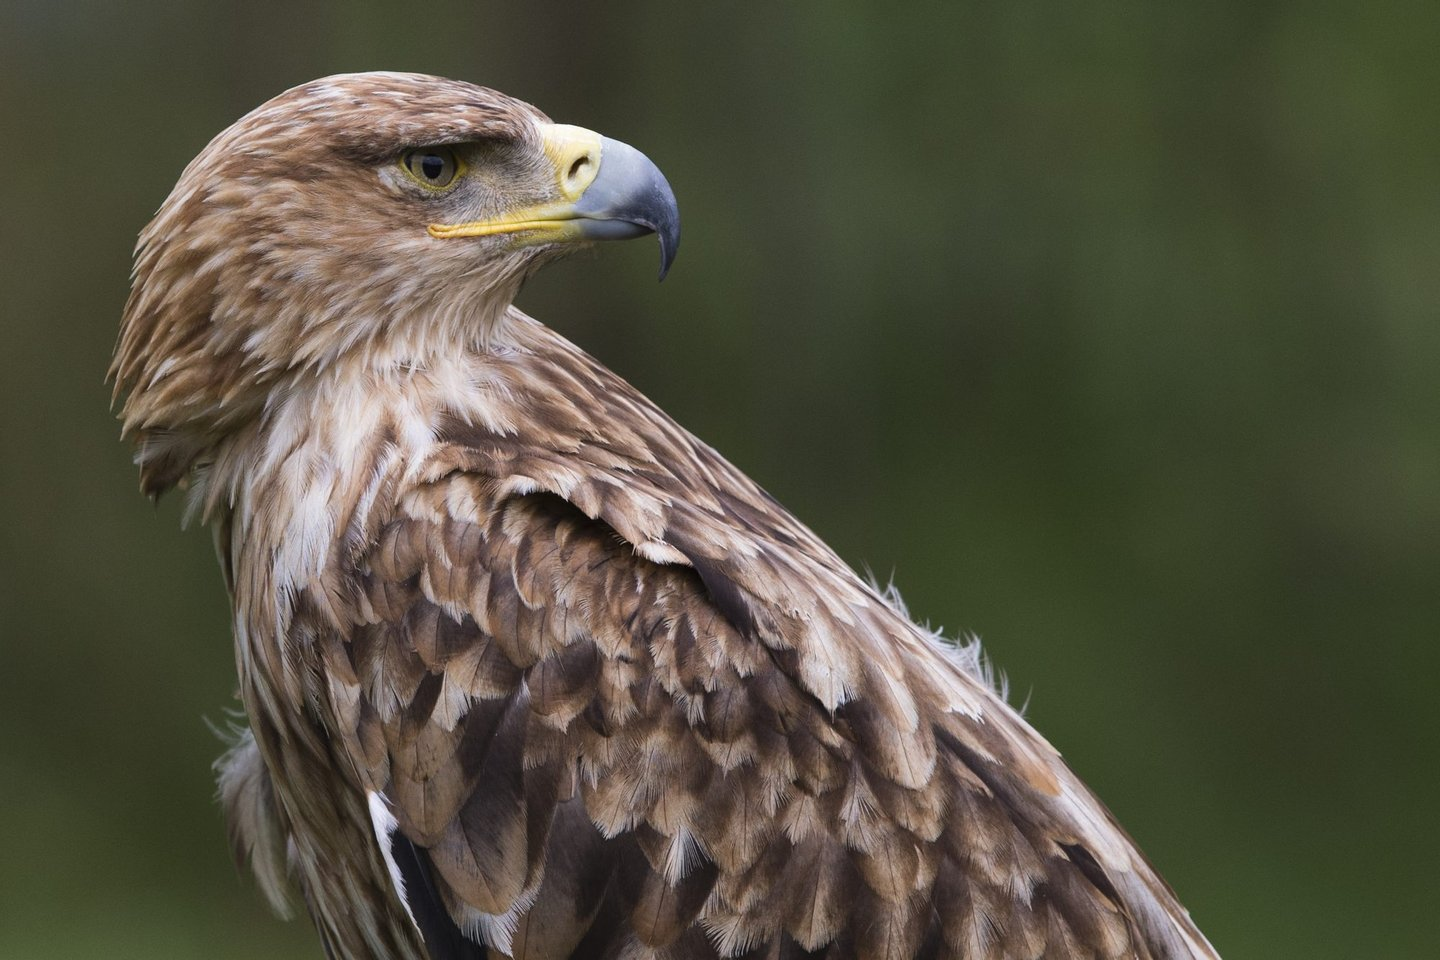 An Imperial Eagle looks on in the Rambouillet forest, on July 31, 2013, some 50 kms outside of Paris. AFP PHOTO / JOEL SAGET (Photo credit should read JOEL SAGET/AFP/Getty Images)